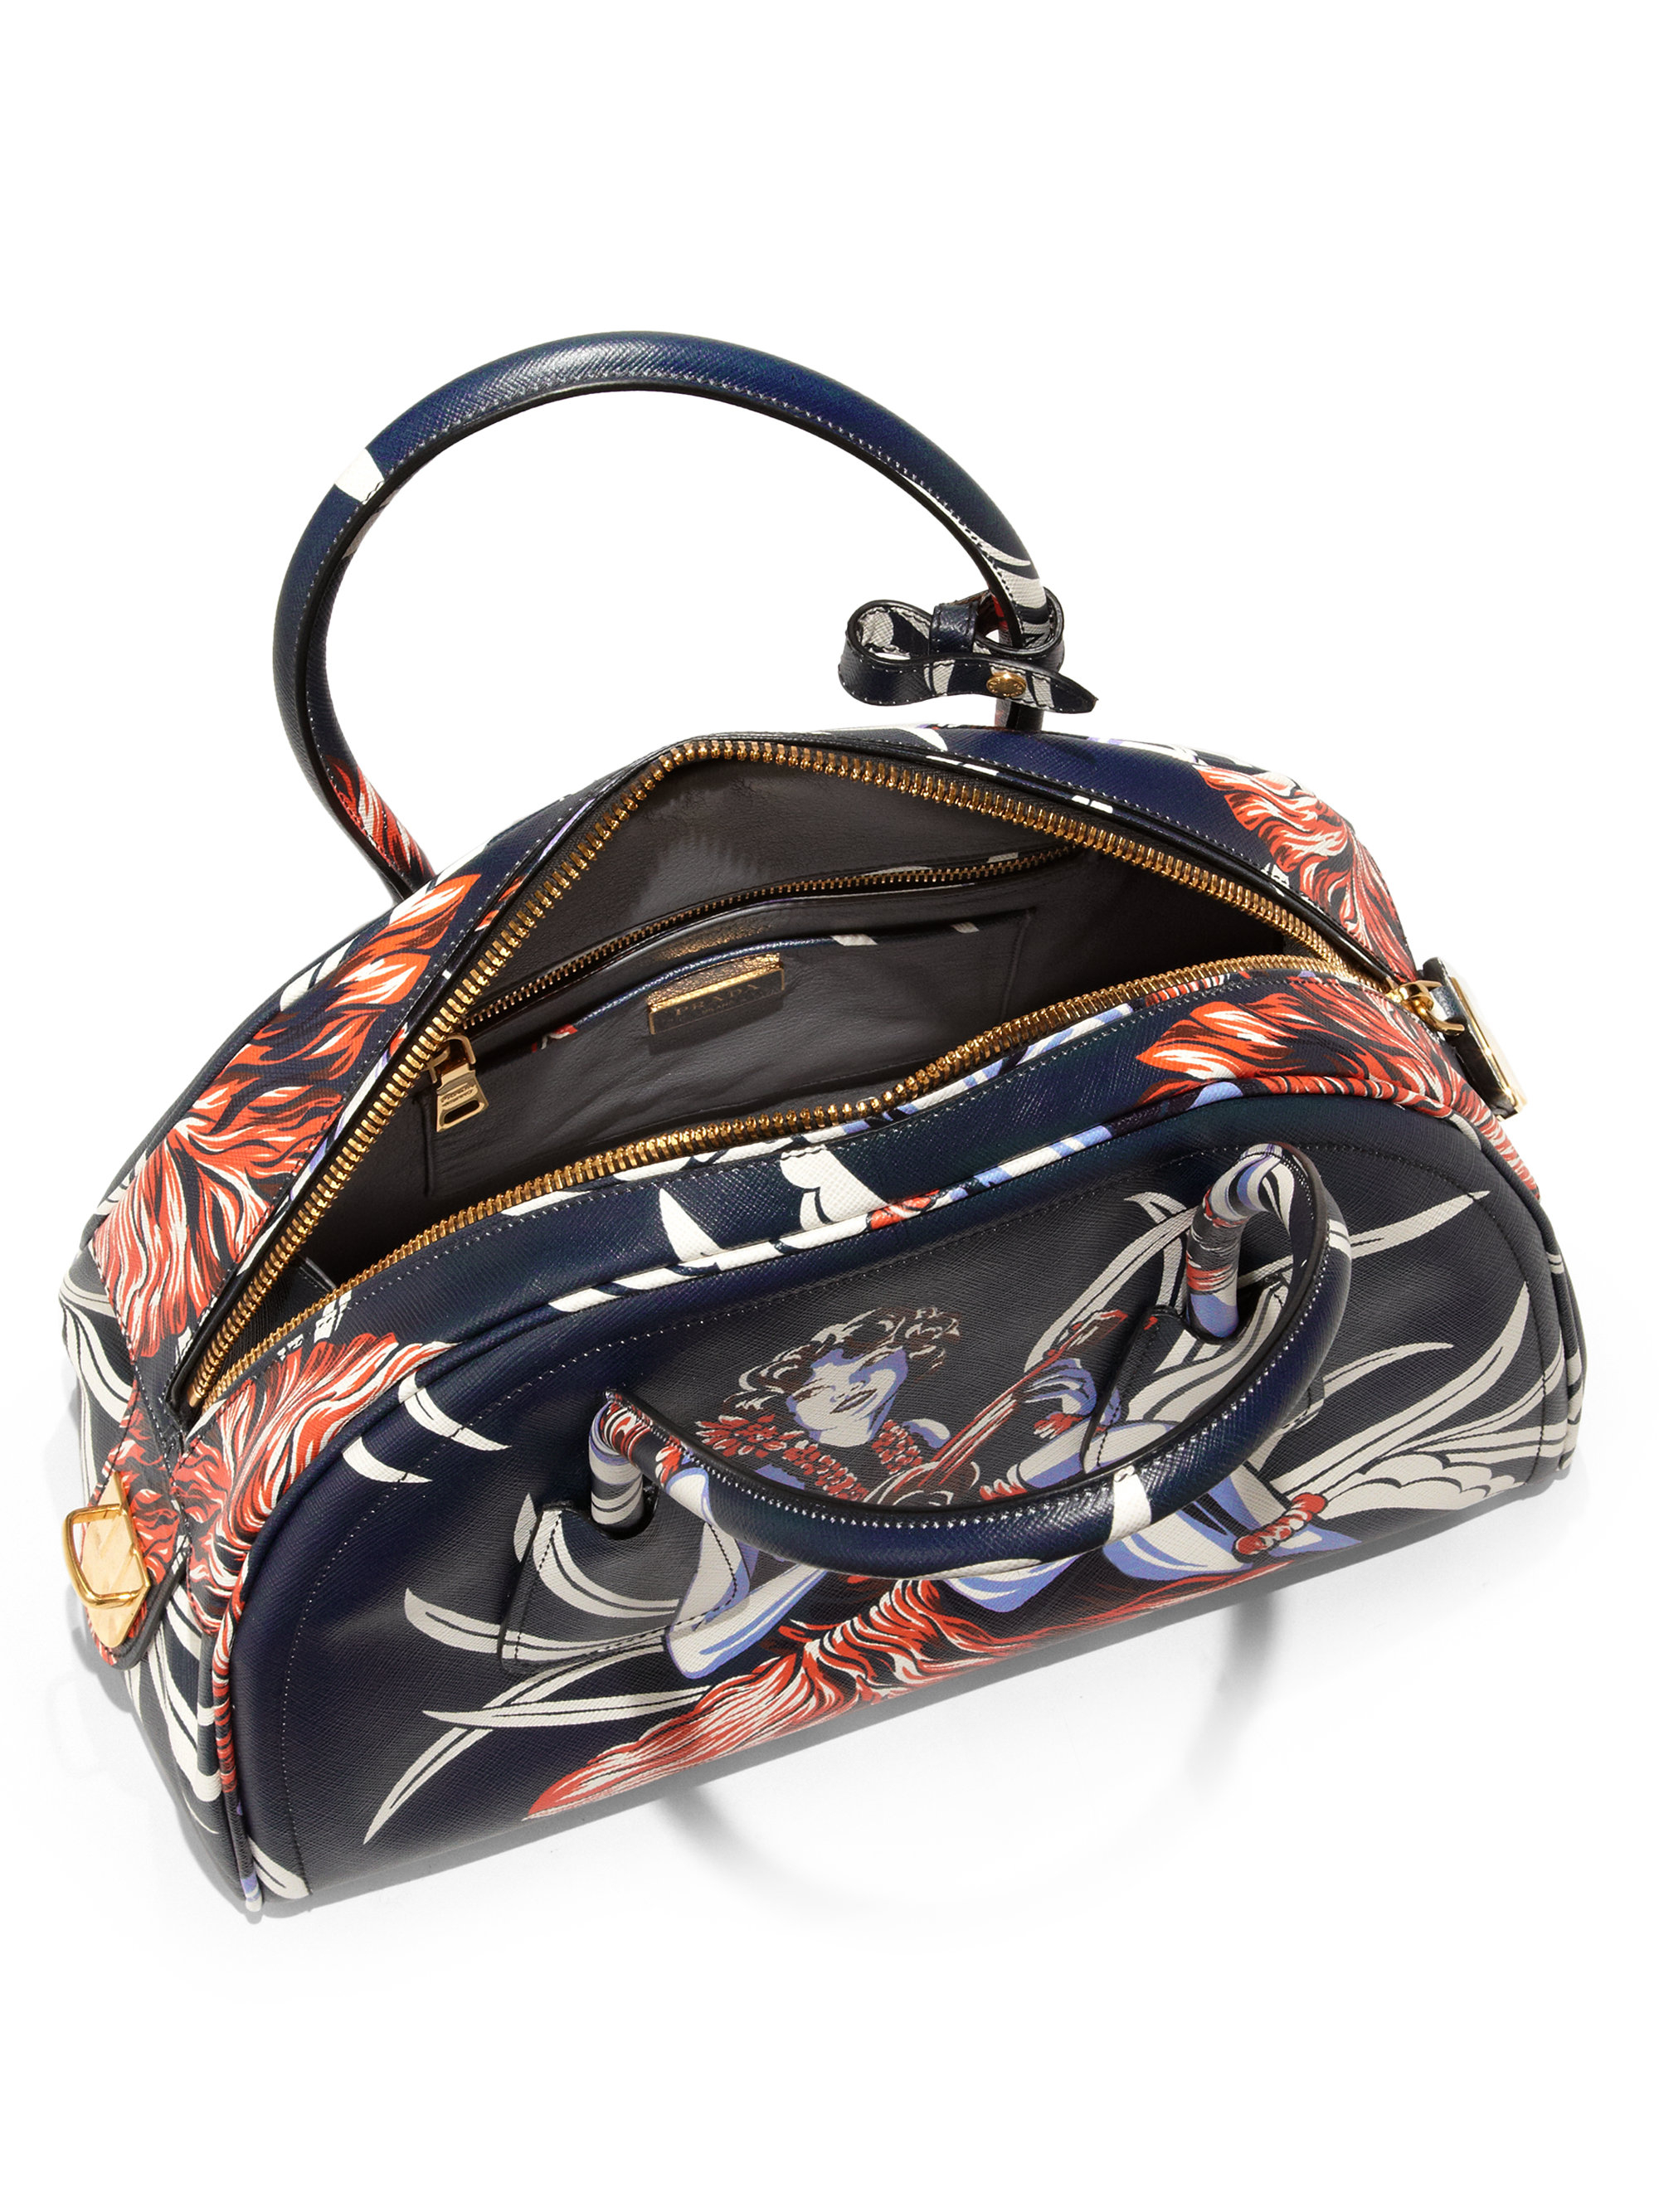 Prada Printed Saffiano Leather Bowler Bag in Blue (TEAL MULTI) | Lyst